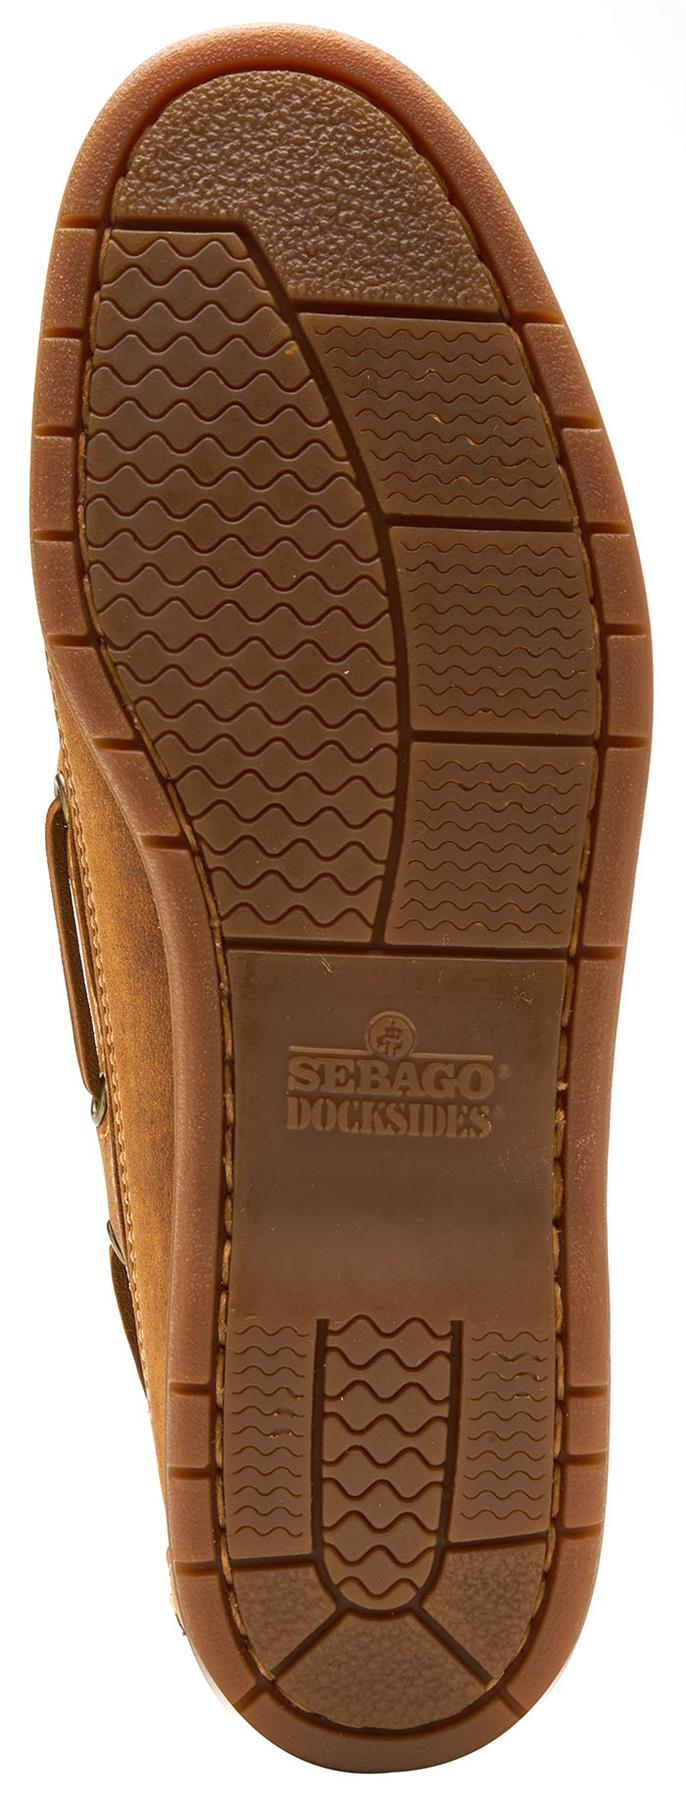 Sebago-Schooner-FGL-Waxed-Leather-Boat-Deck-Shoes-in-Brown-amp-Navy-Blue thumbnail 5